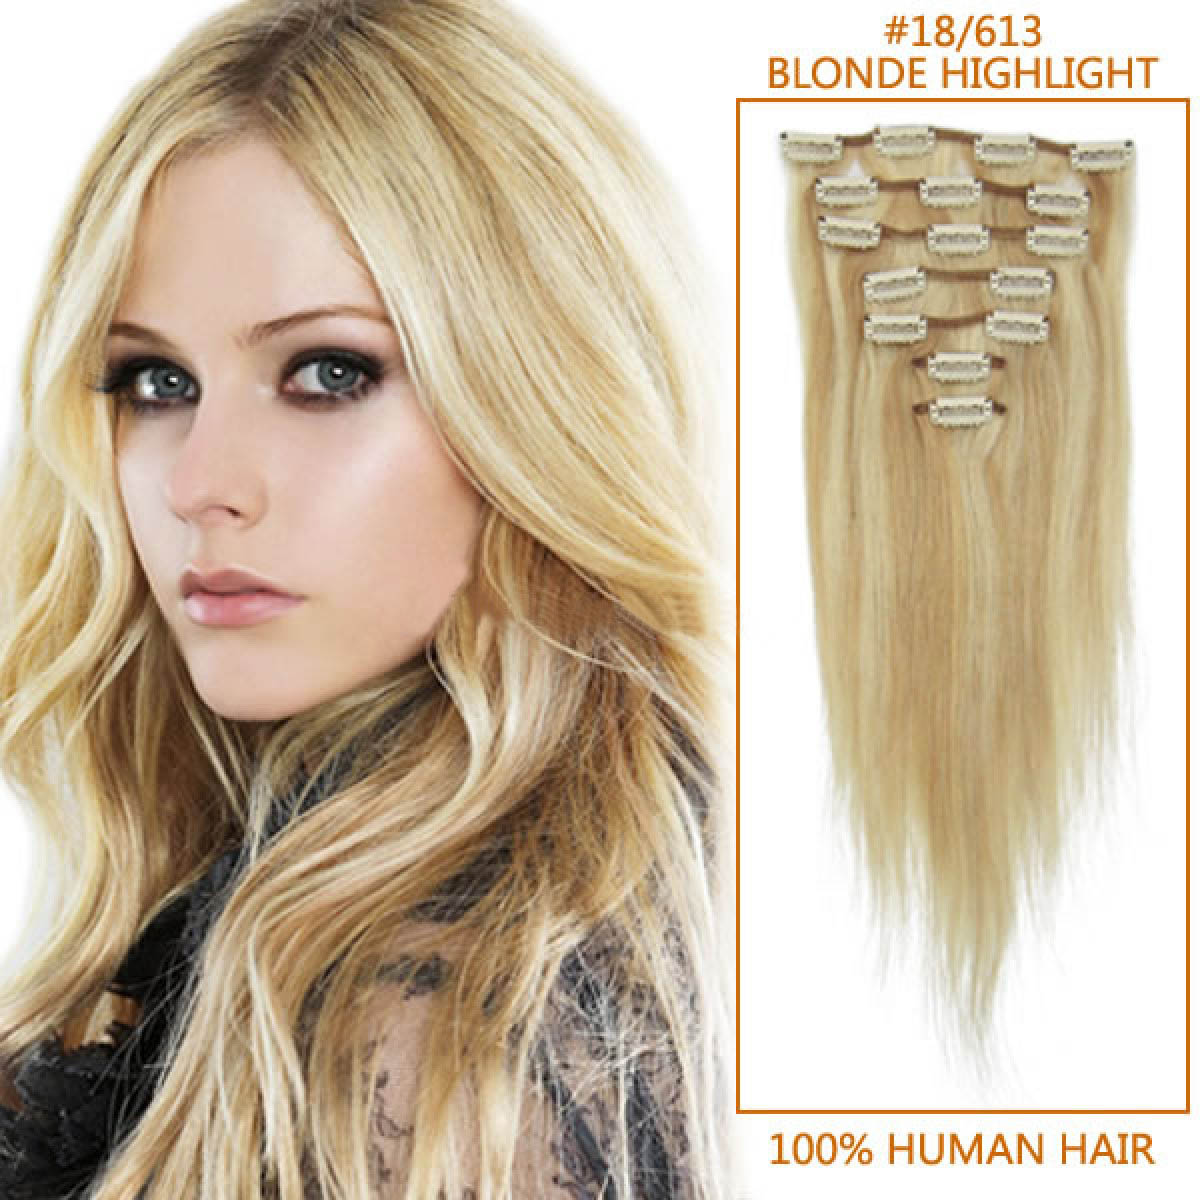 30 Inch 18613 Blonde Highlight Clip In Remy Human Hair Extensions 9pcs